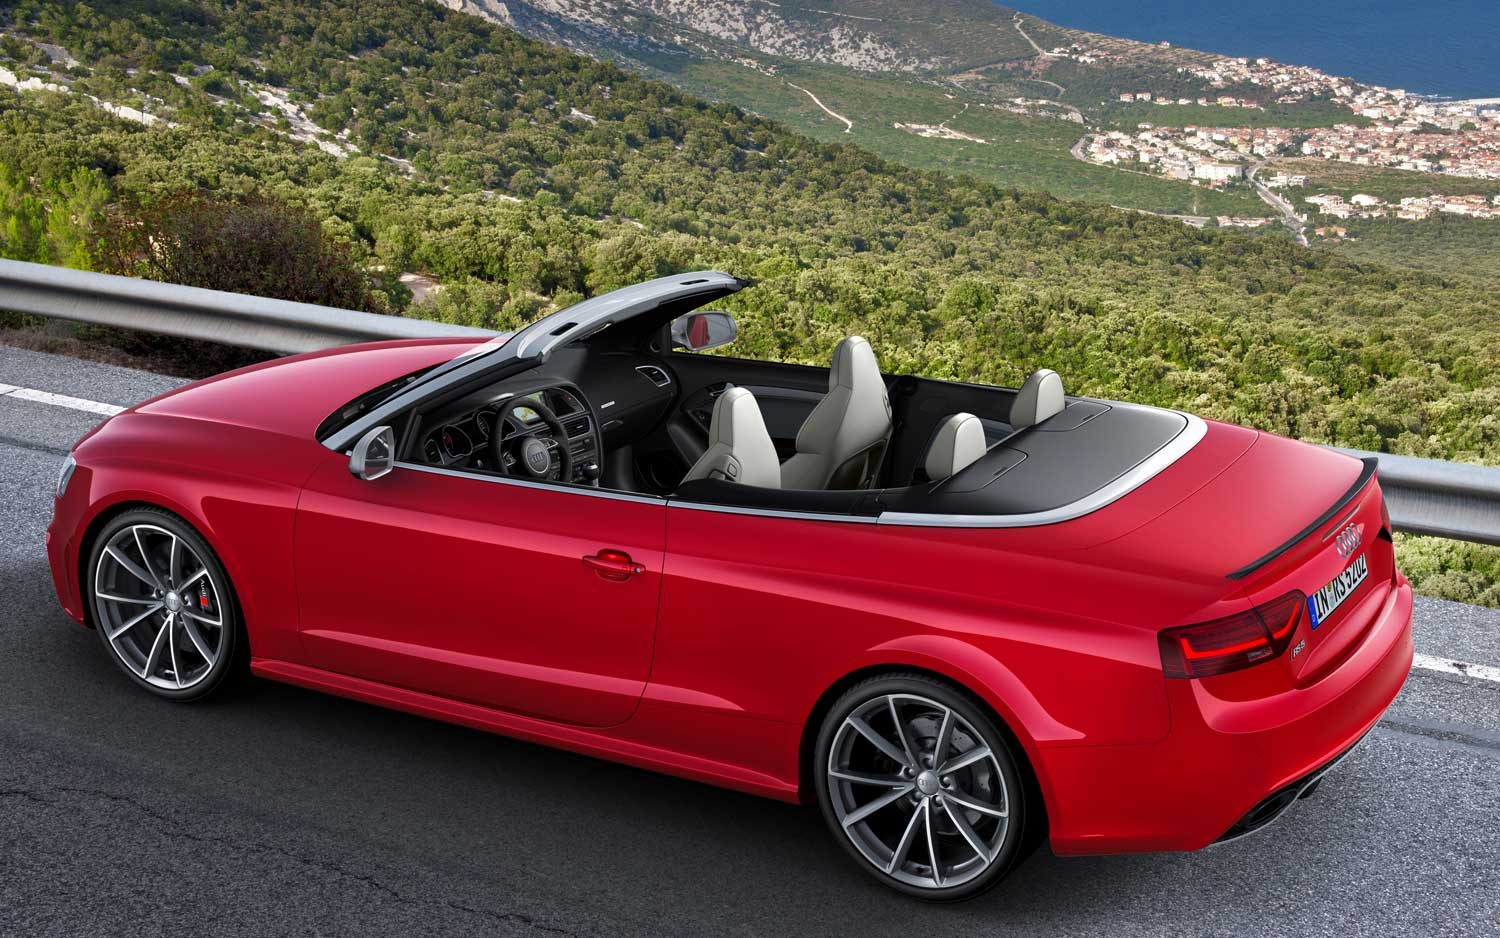 2013 Audi RS 5 Cabriolet Side View1